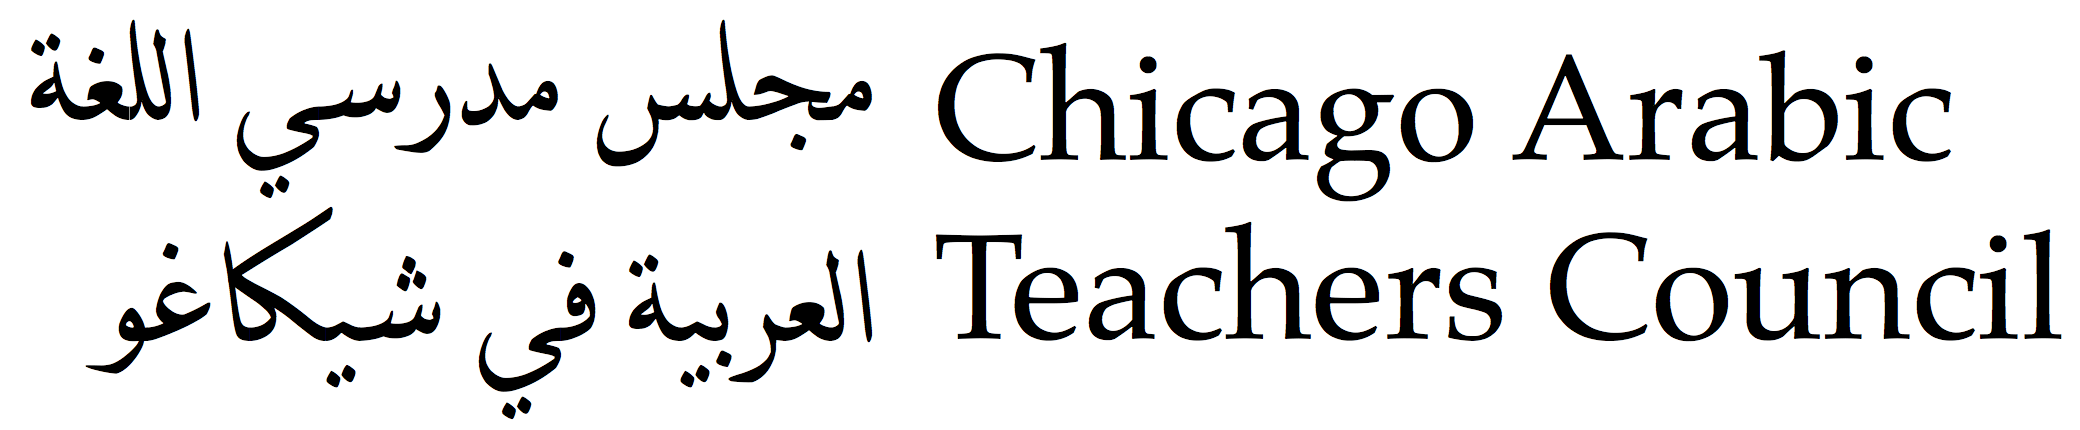 Chicago Arabic Teachers Council